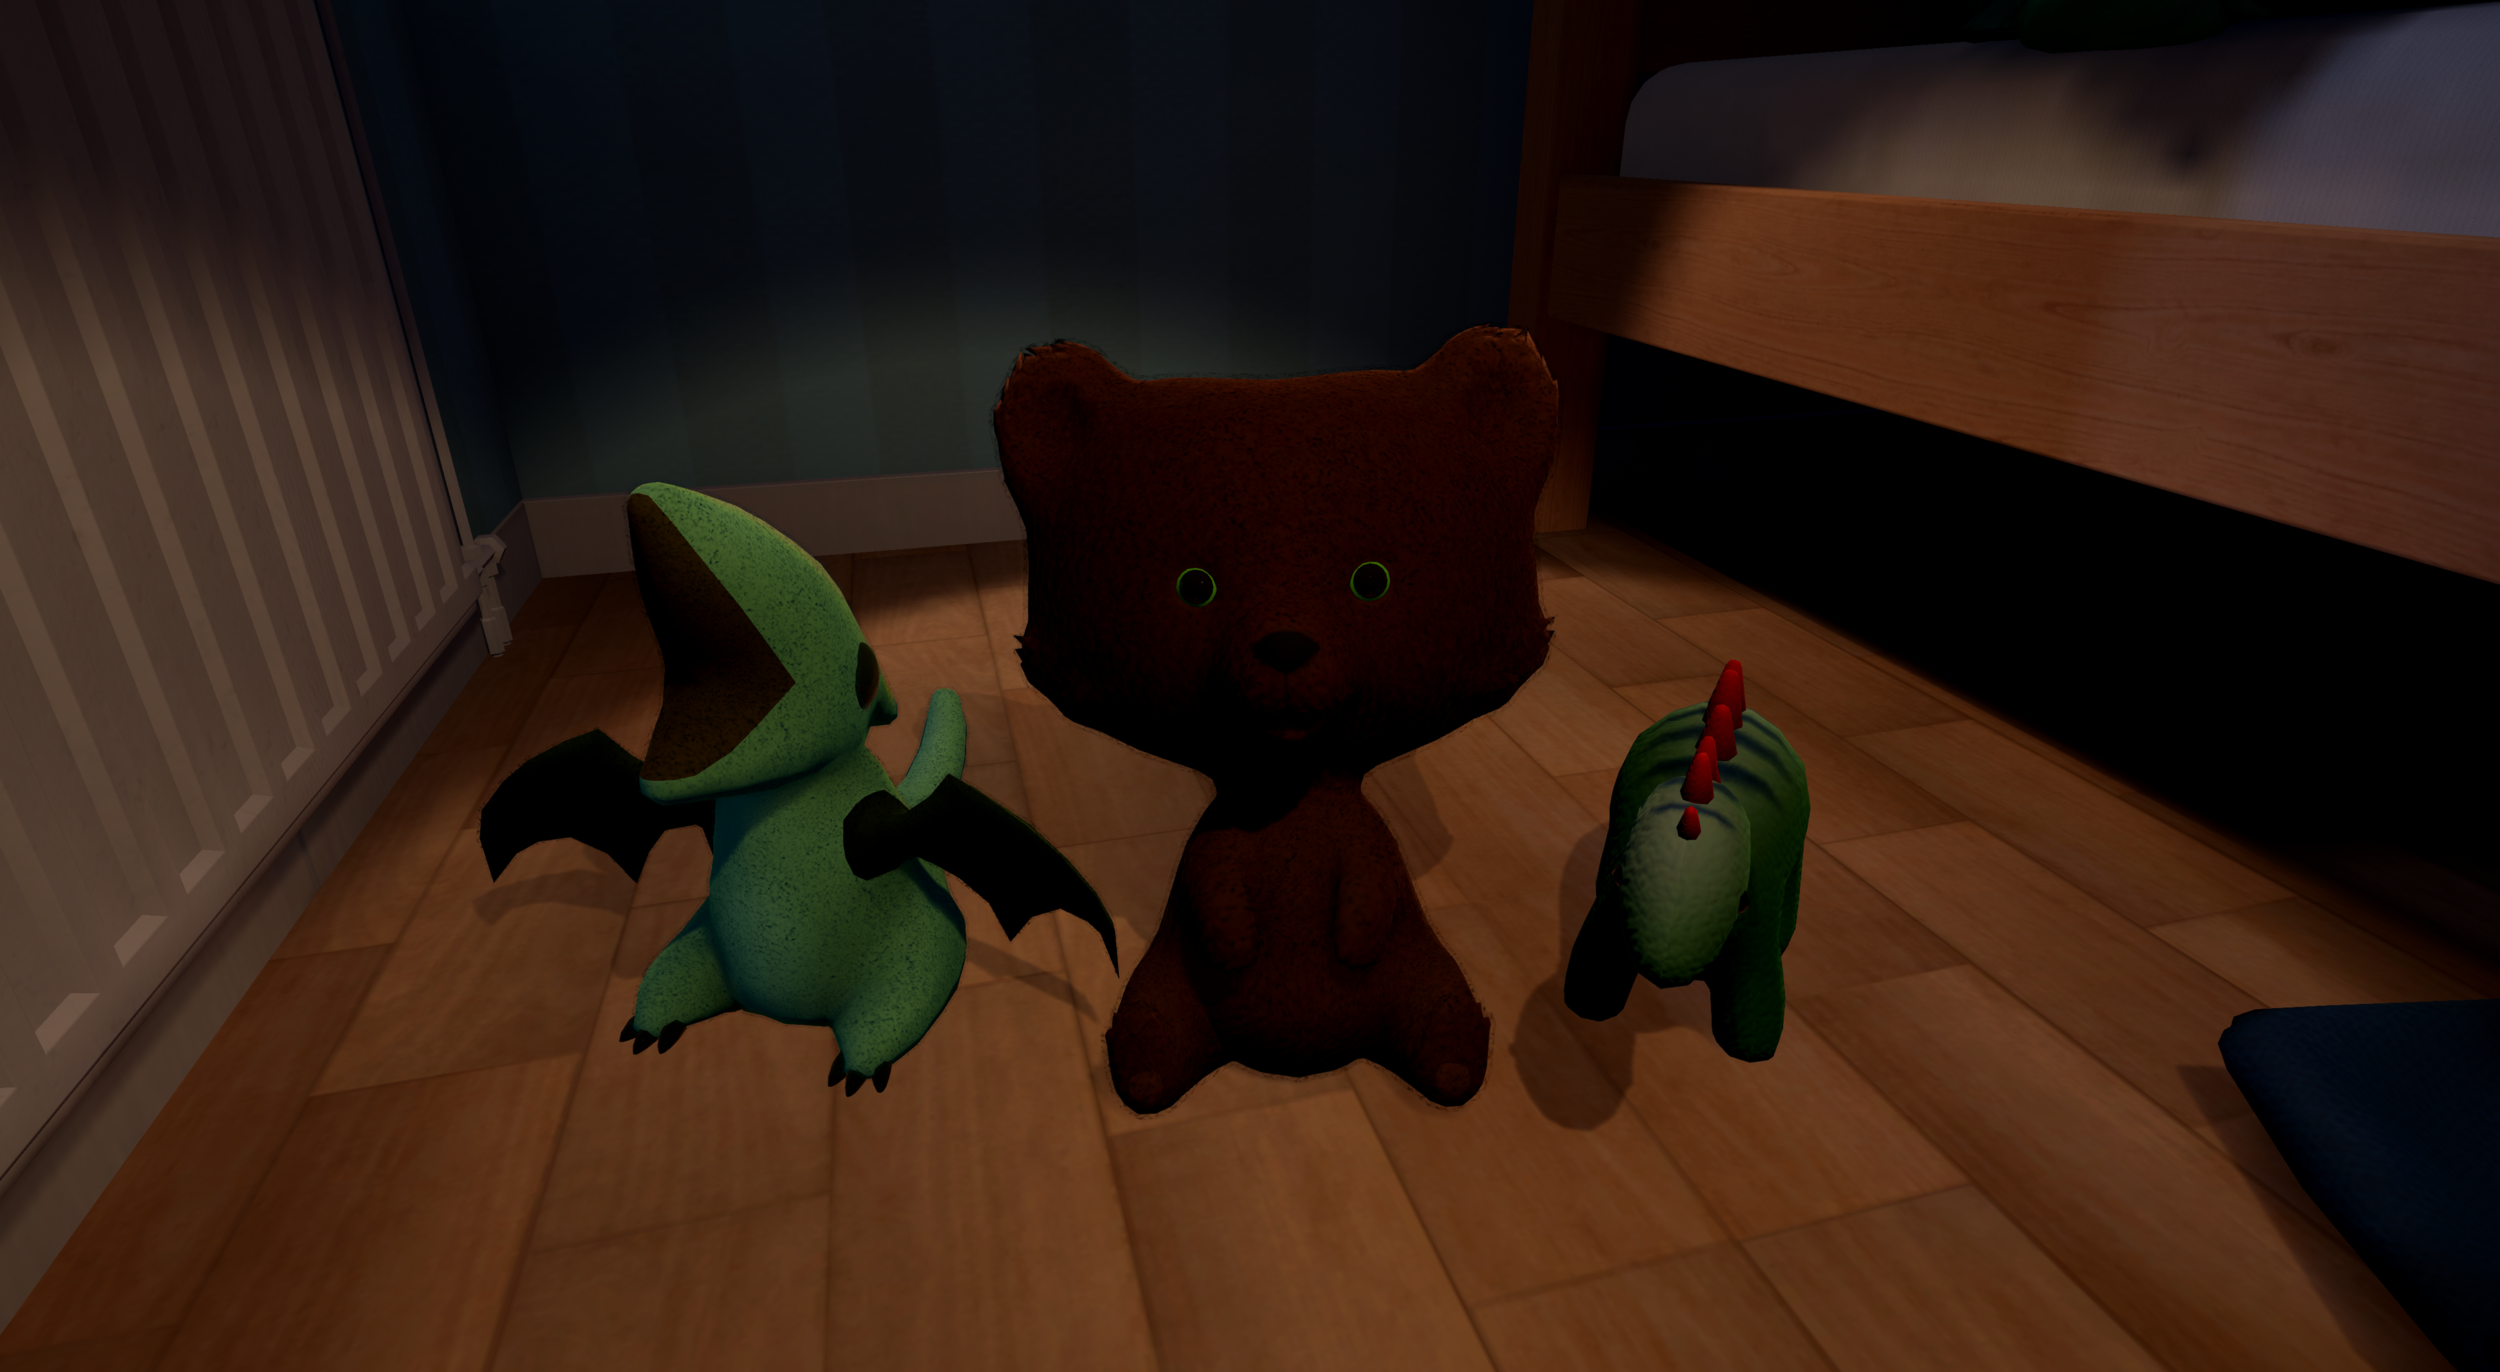 Teddy and friends, some of the child protagonist's favorite toys.